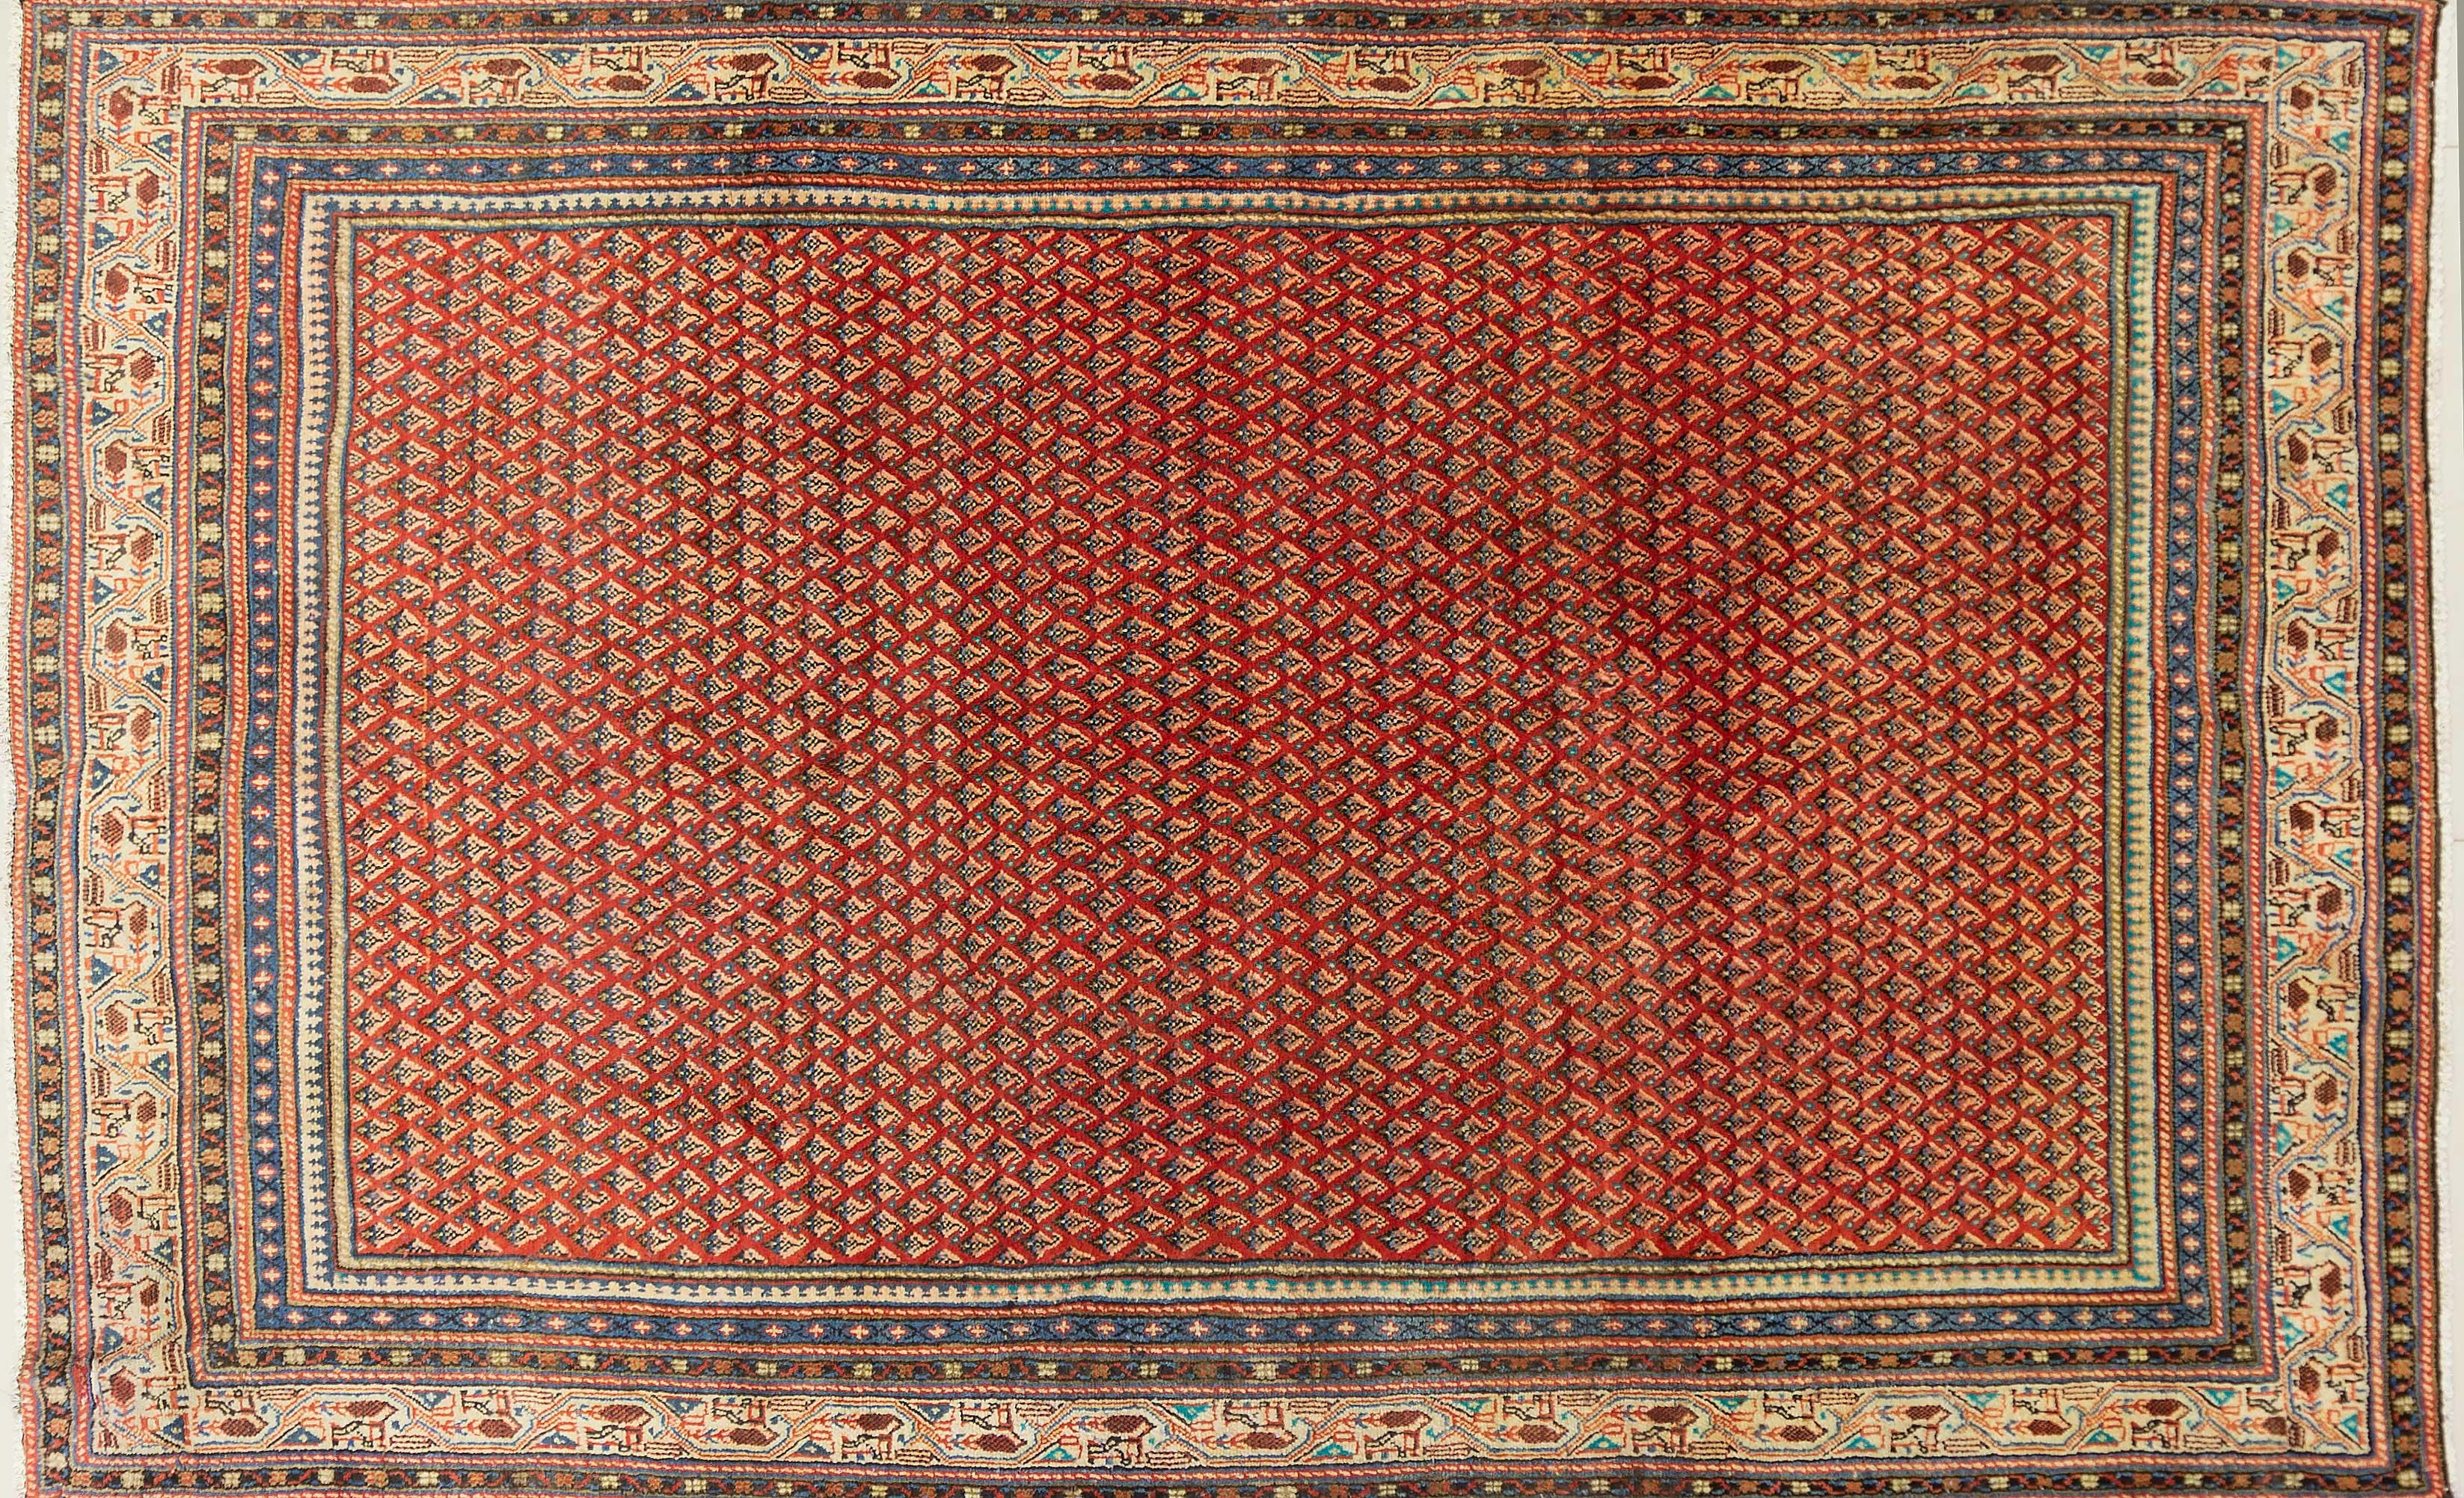 A Persian Hand Knotted Mir Carpet, 290 x 180